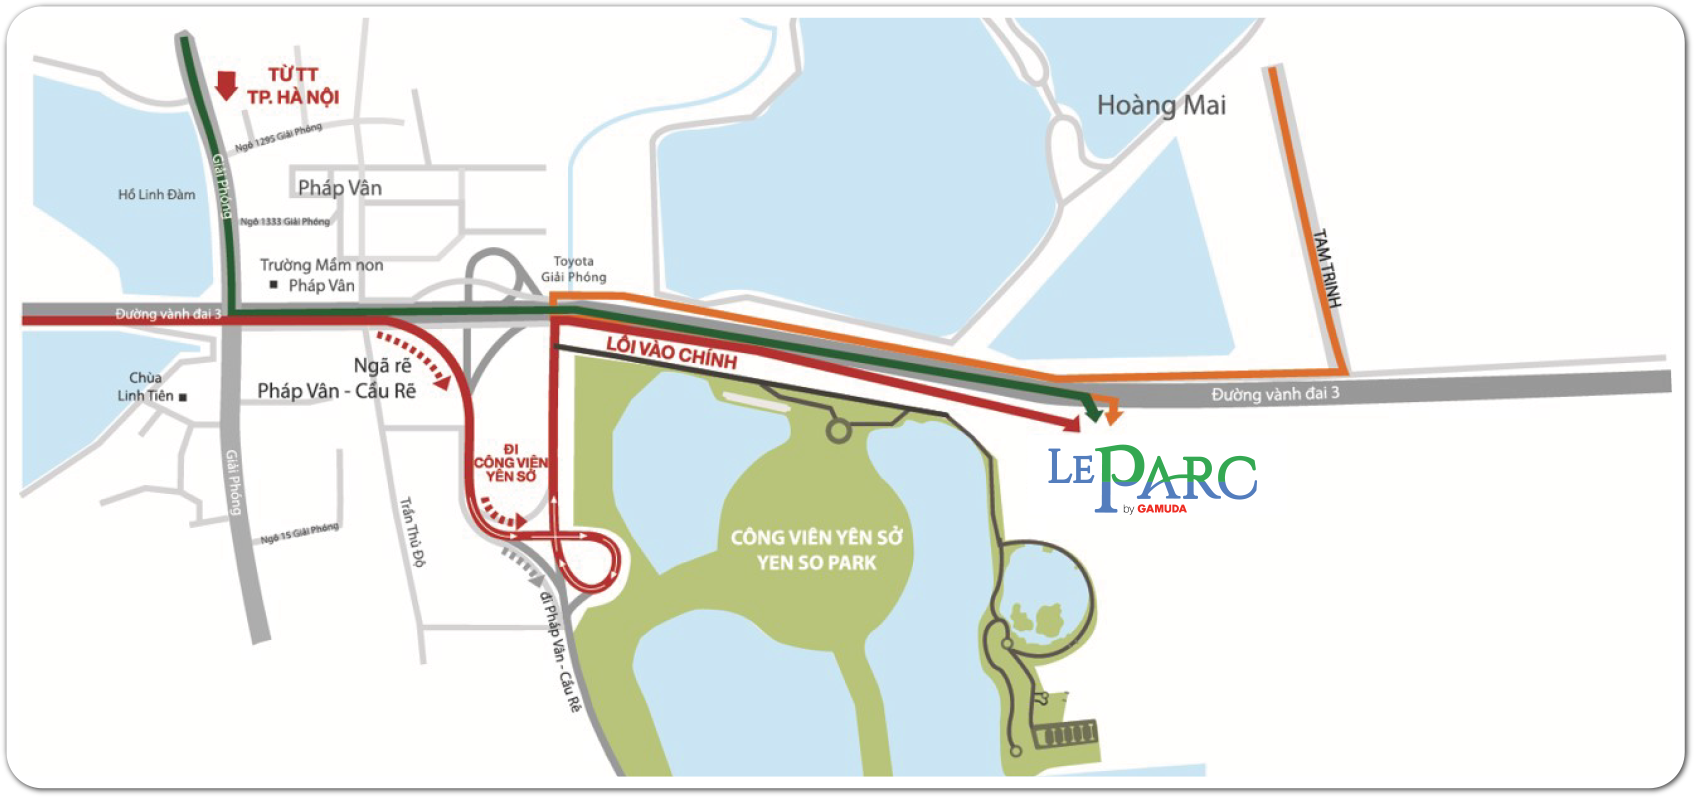 A map with the direction to LeParc